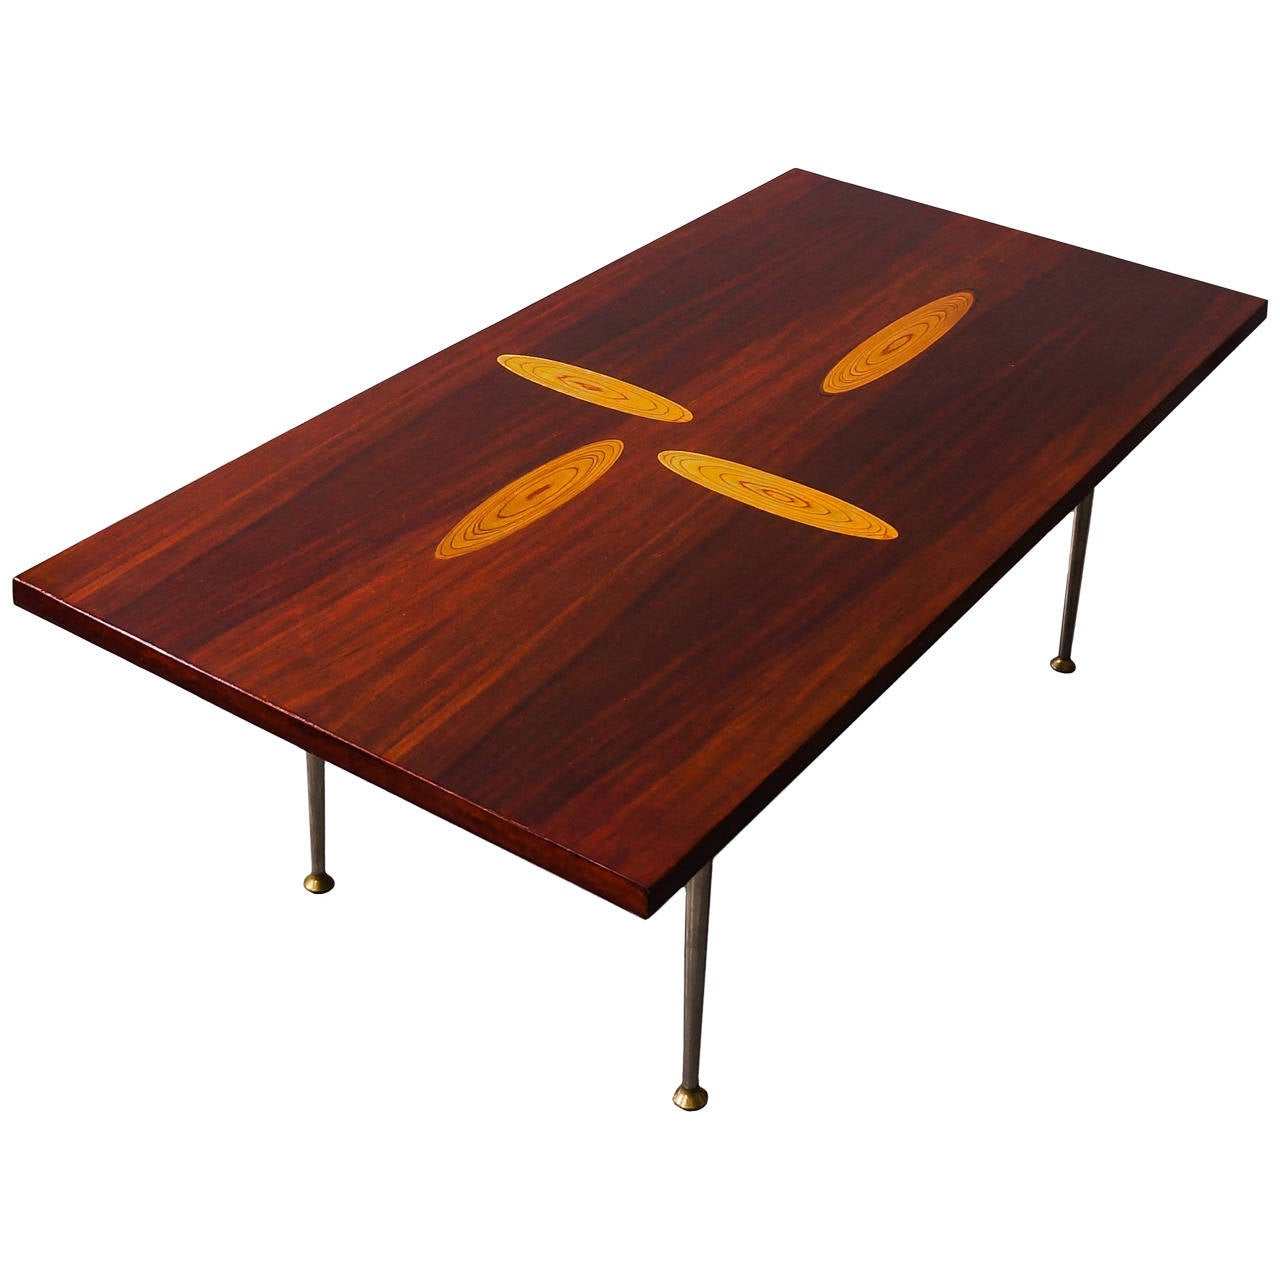 Tapio Wirkkala Coffee or Cocktail Table, Model 9016